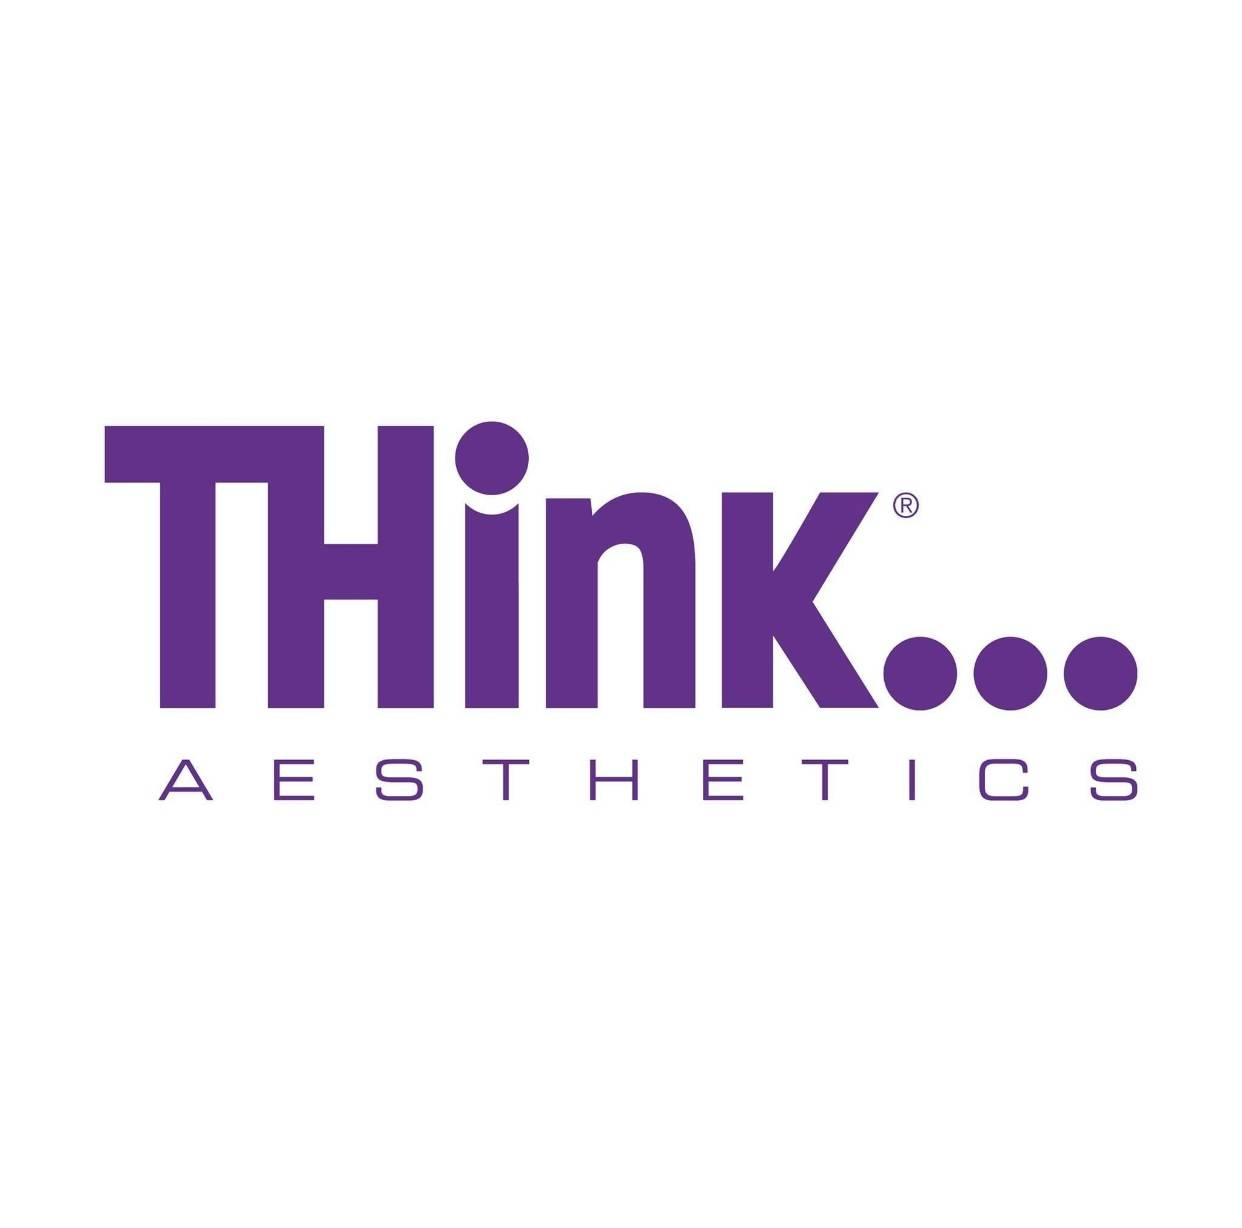 THINK Cosmetic Tattoo Supplies is a Aussie Inked Tattoo Care Official Stockist